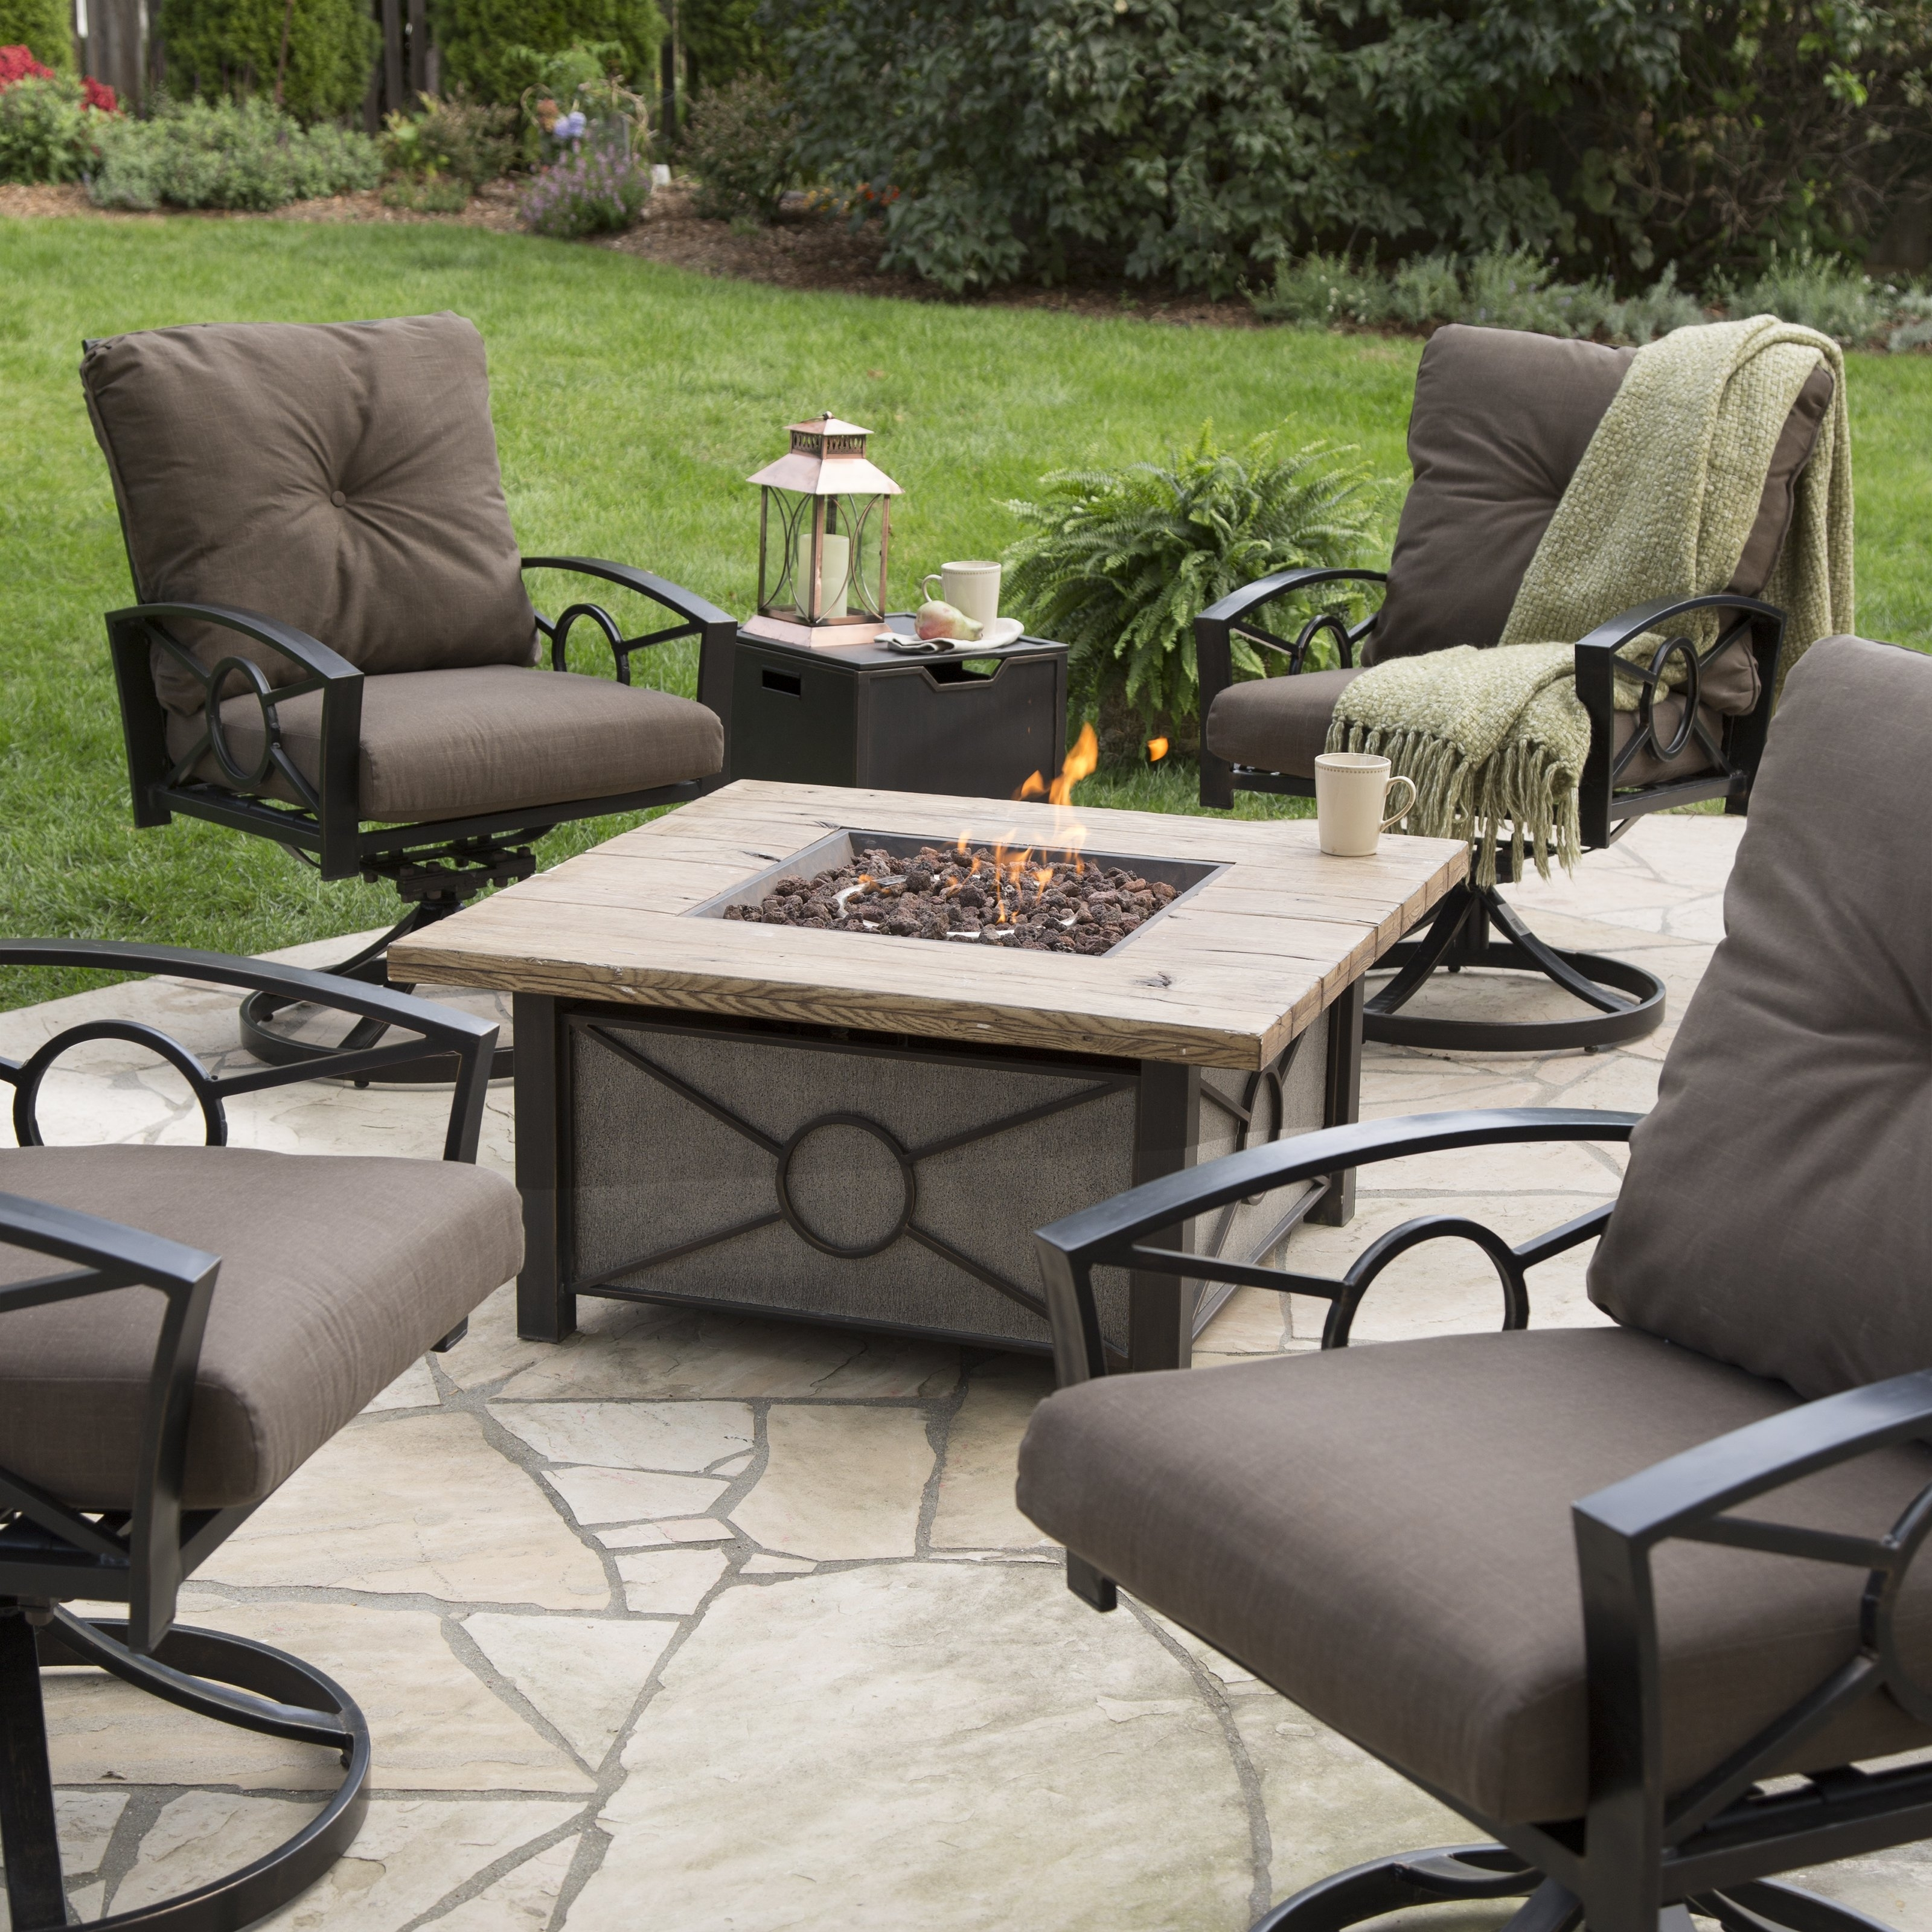 Most Popular Patio Conversation Sets Costco Wicker Conversation Set Target Patio Inside Patio Furniture Conversation Sets With Fire Pit (View 11 of 20)